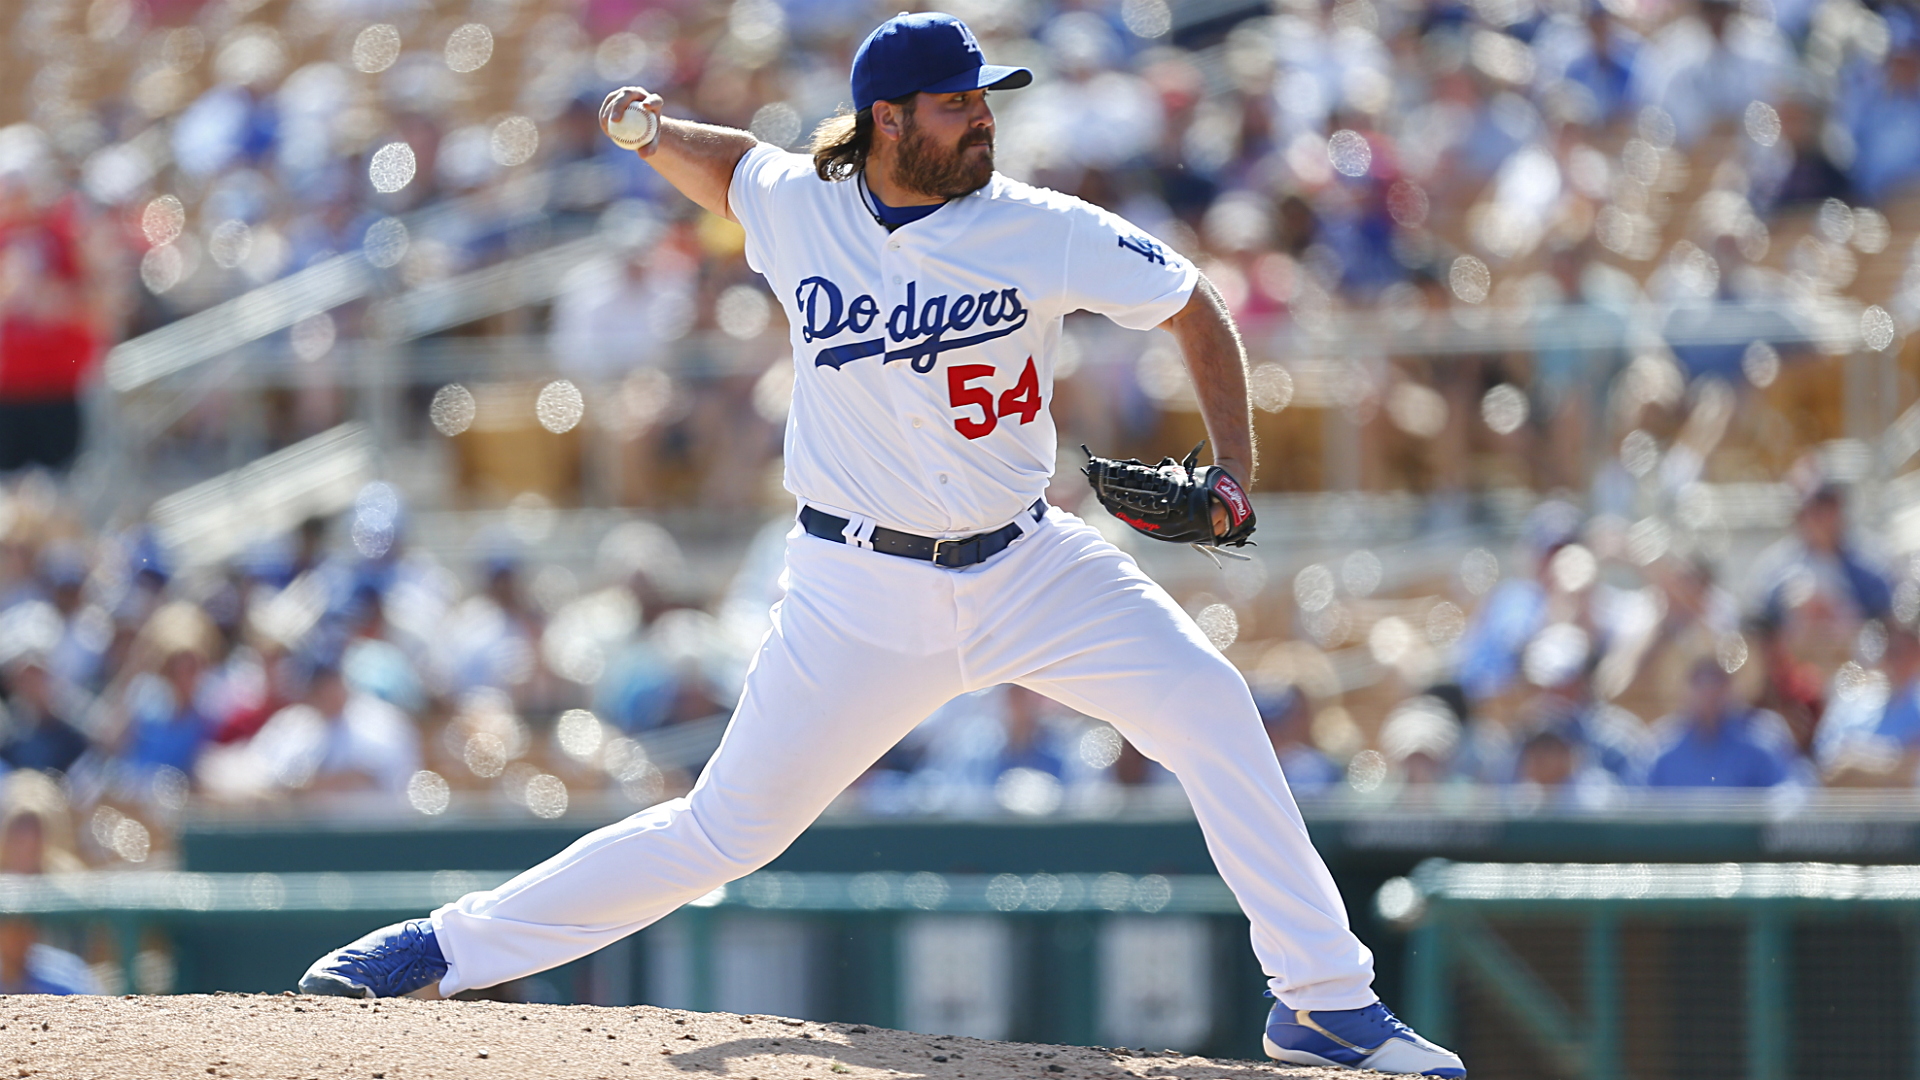 chris-perez-dodgers-ftr-032114-ap